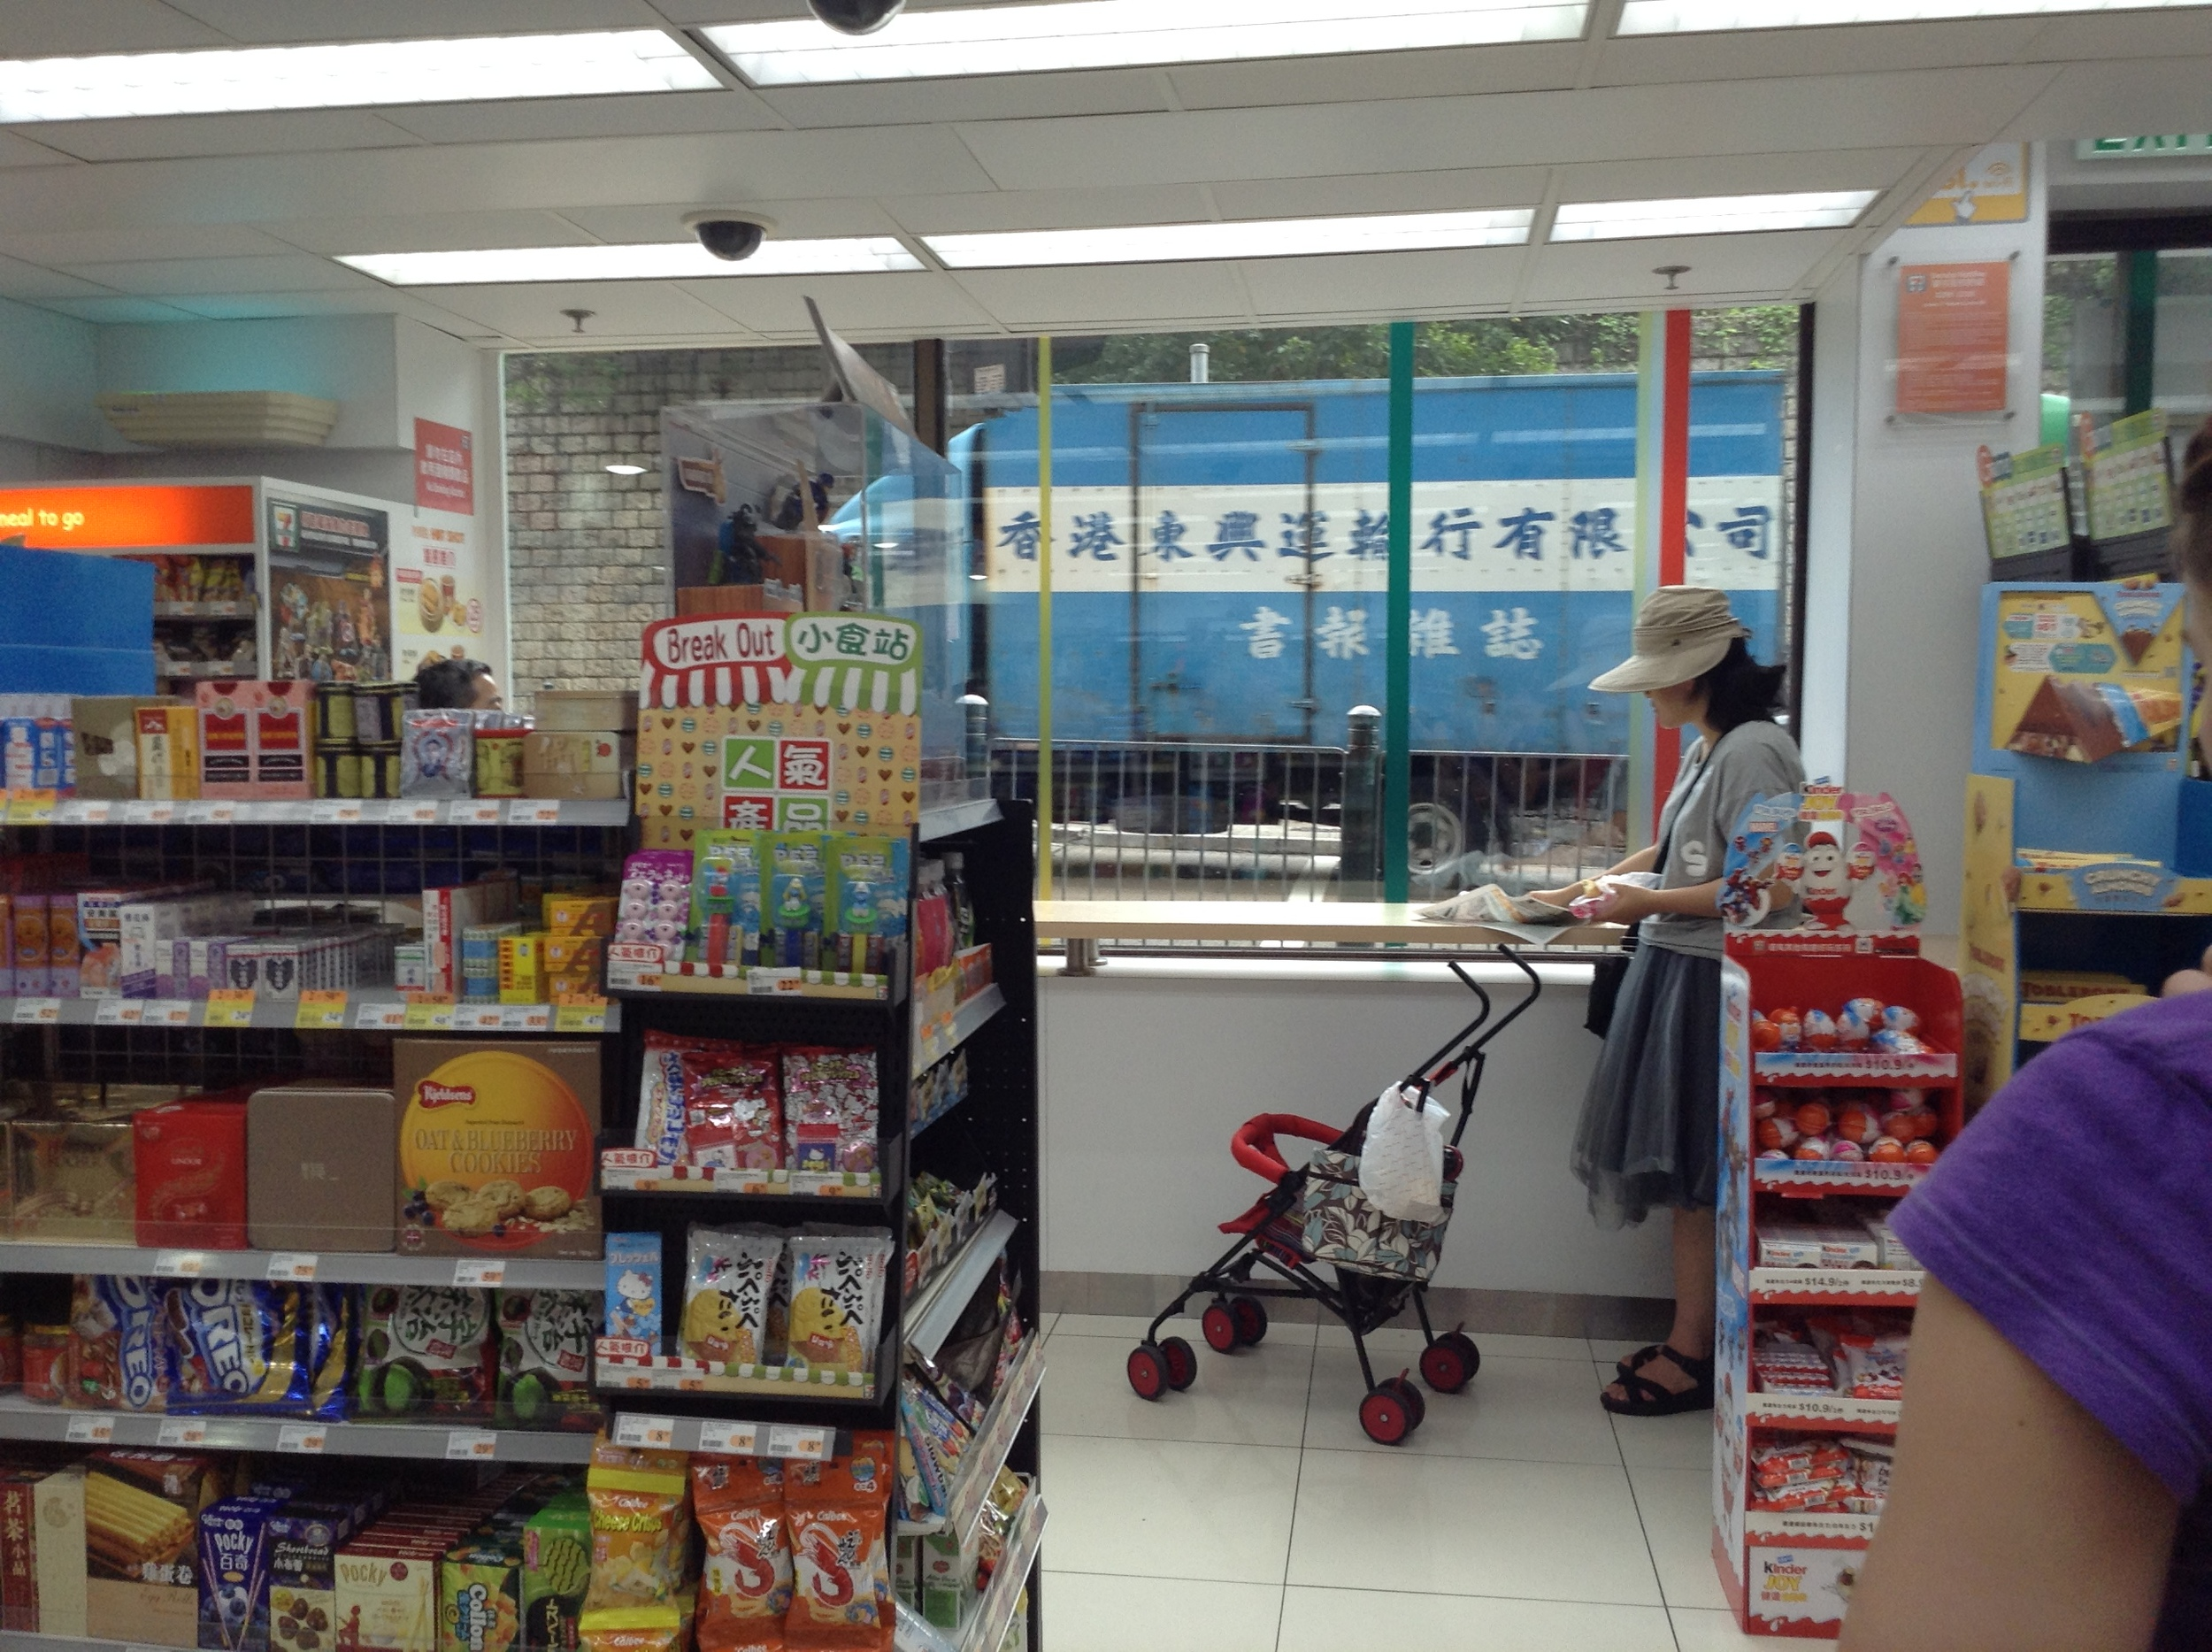 A couple pictures from inside 7 Eleven